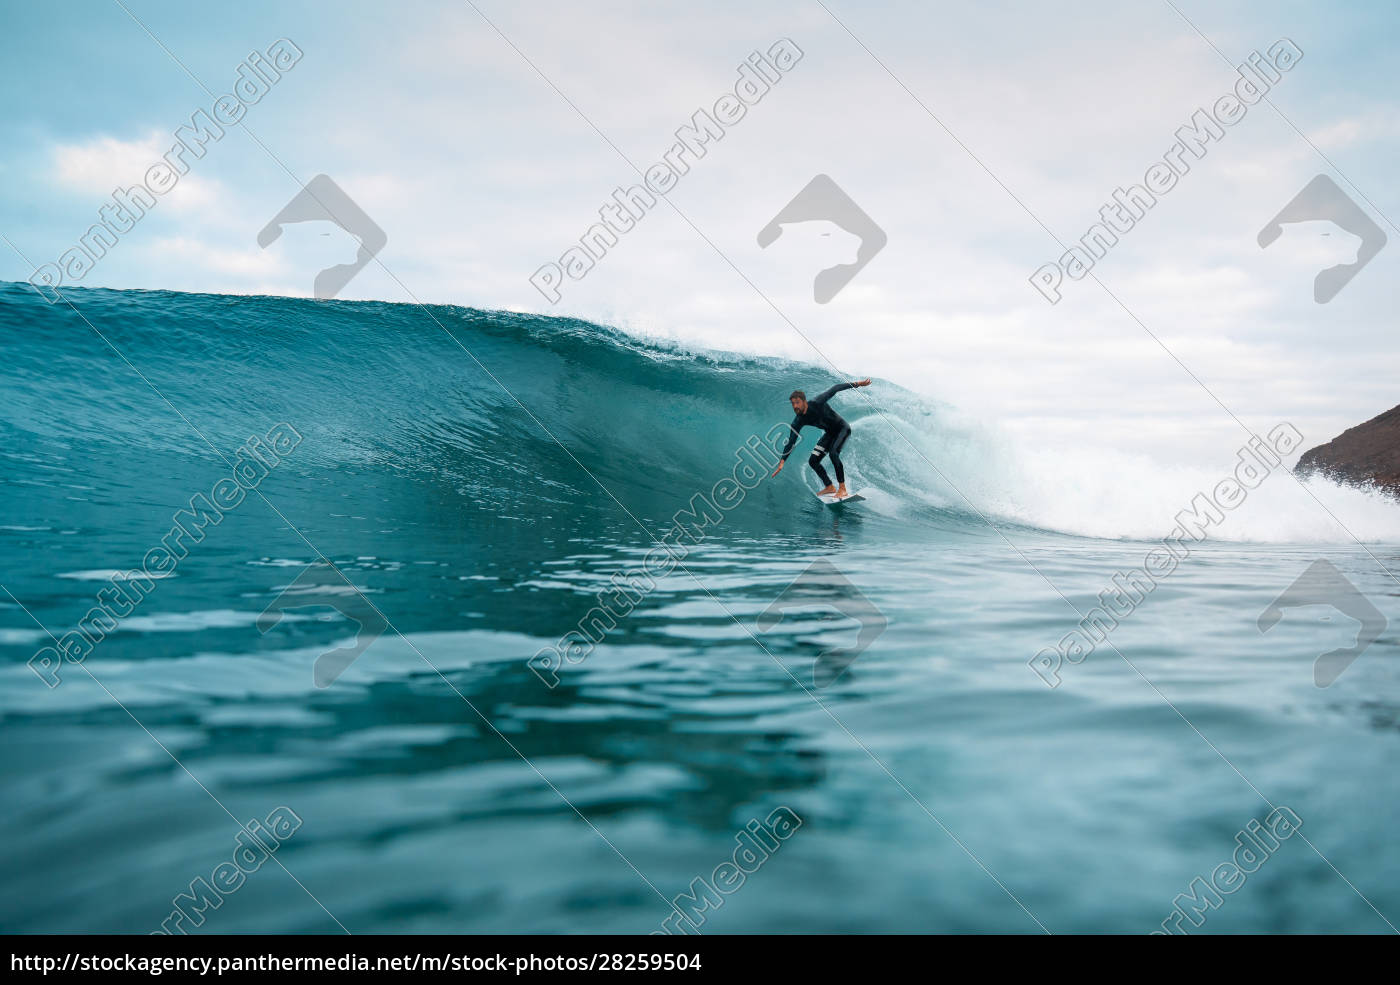 surfer, riding, waves, on, the, island - 28259504